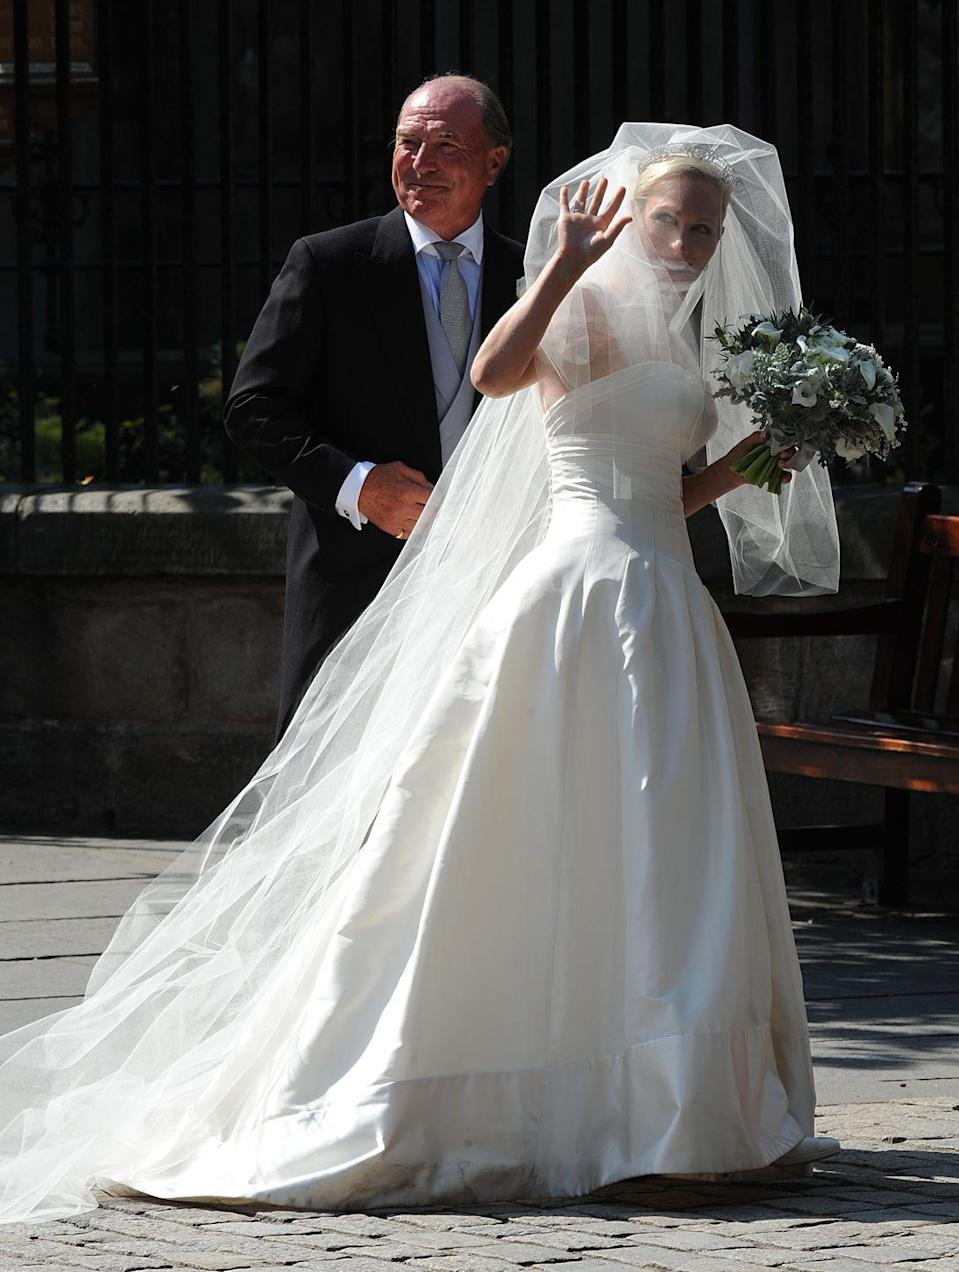 "<p>Phillips, granddaughter of the Queen, chose a sleeveless design by <a href=""https://www.harpersbazaar.com/uk/bazaar-brides/a15892164/who-is-stewart-parvin-meghan-markle-wedding-dress/"" rel=""nofollow noopener"" target=""_blank"" data-ylk=""slk:Stewart Parvin"" class=""link rapid-noclick-resp"">Stewart Parvin</a> that featured a beautiful ball gown skirt.</p>"